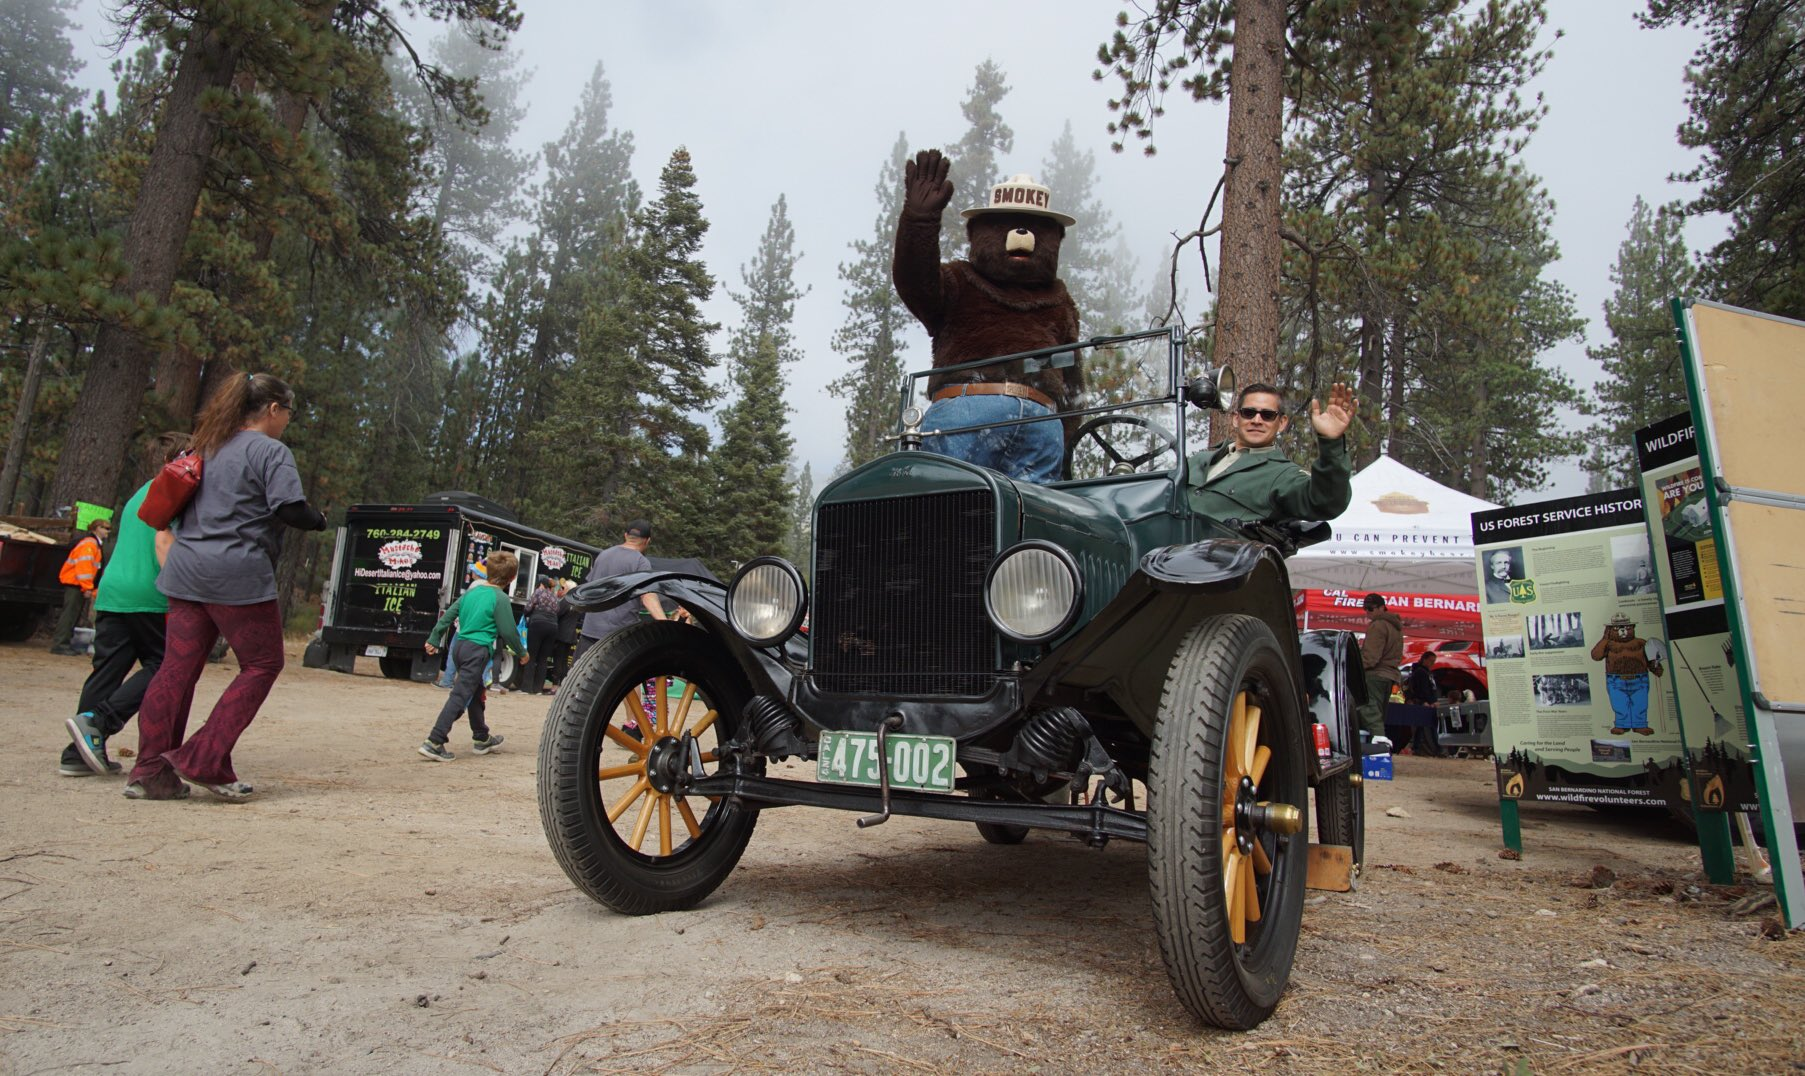 Smokey Bear and a Forest Service employee wave from a black 1924 Model T fire vehicle.